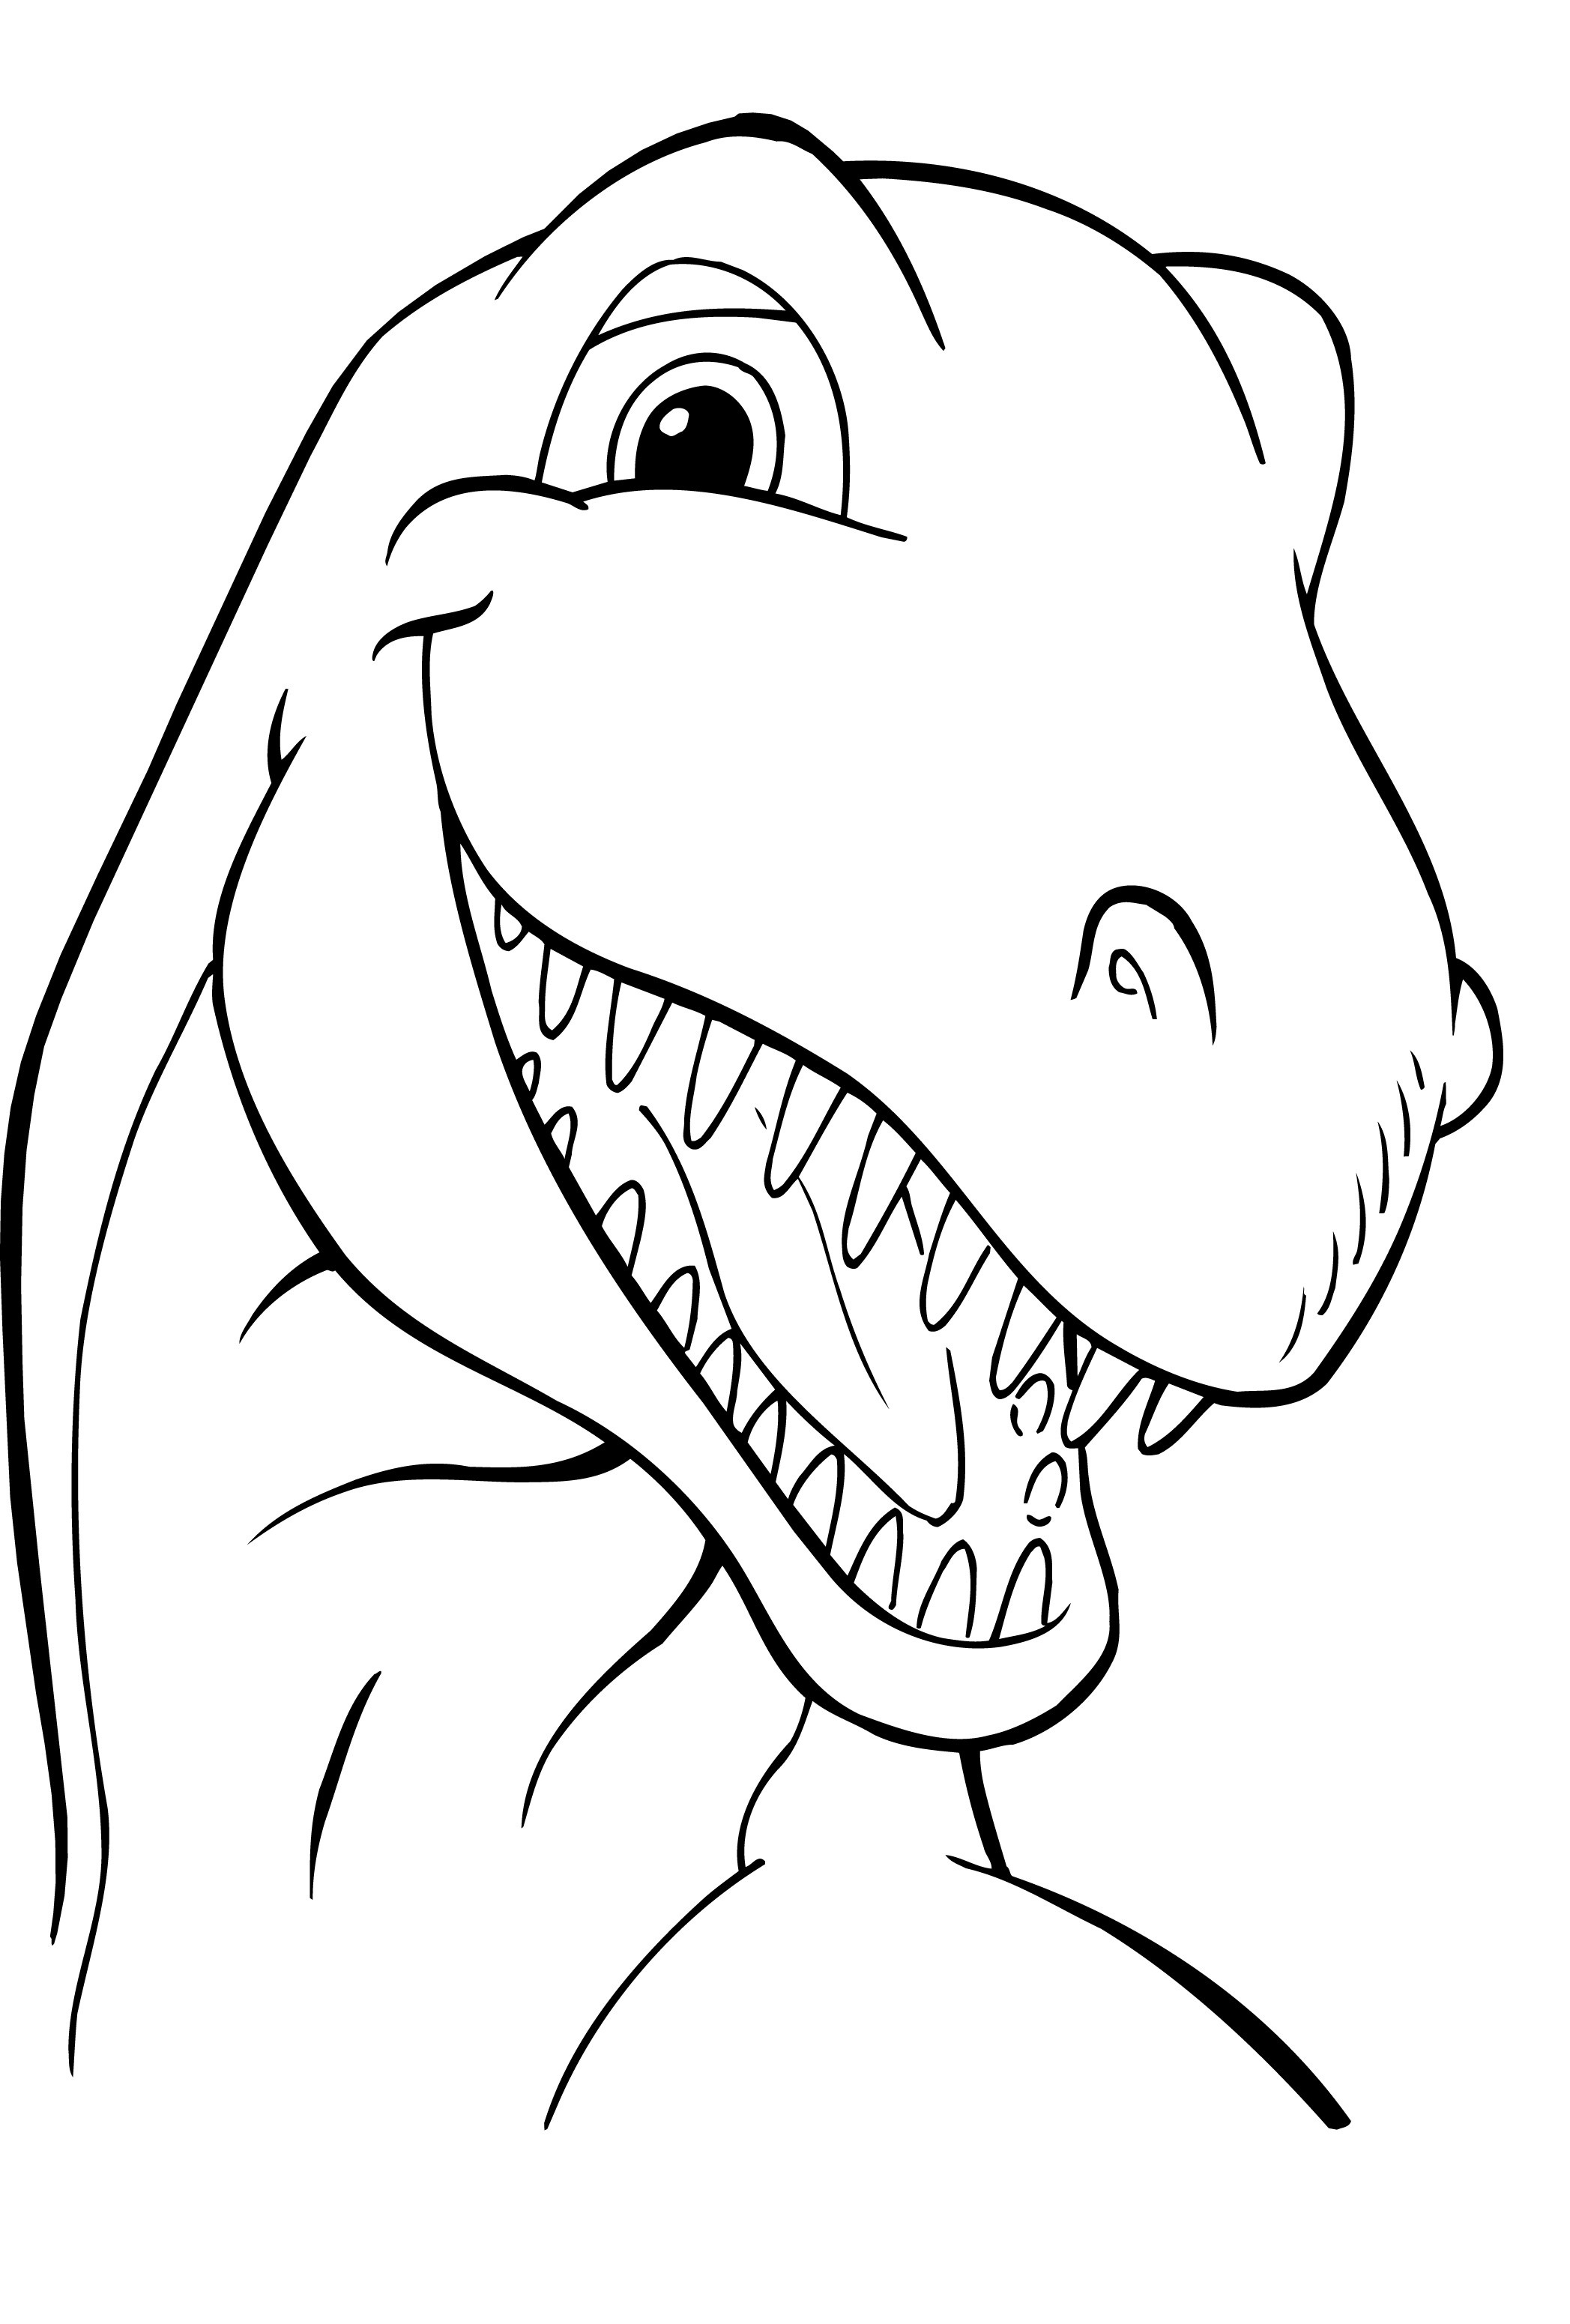 Free Printable Dinosaur Coloring Pages For Kids Print Coloring Pages For